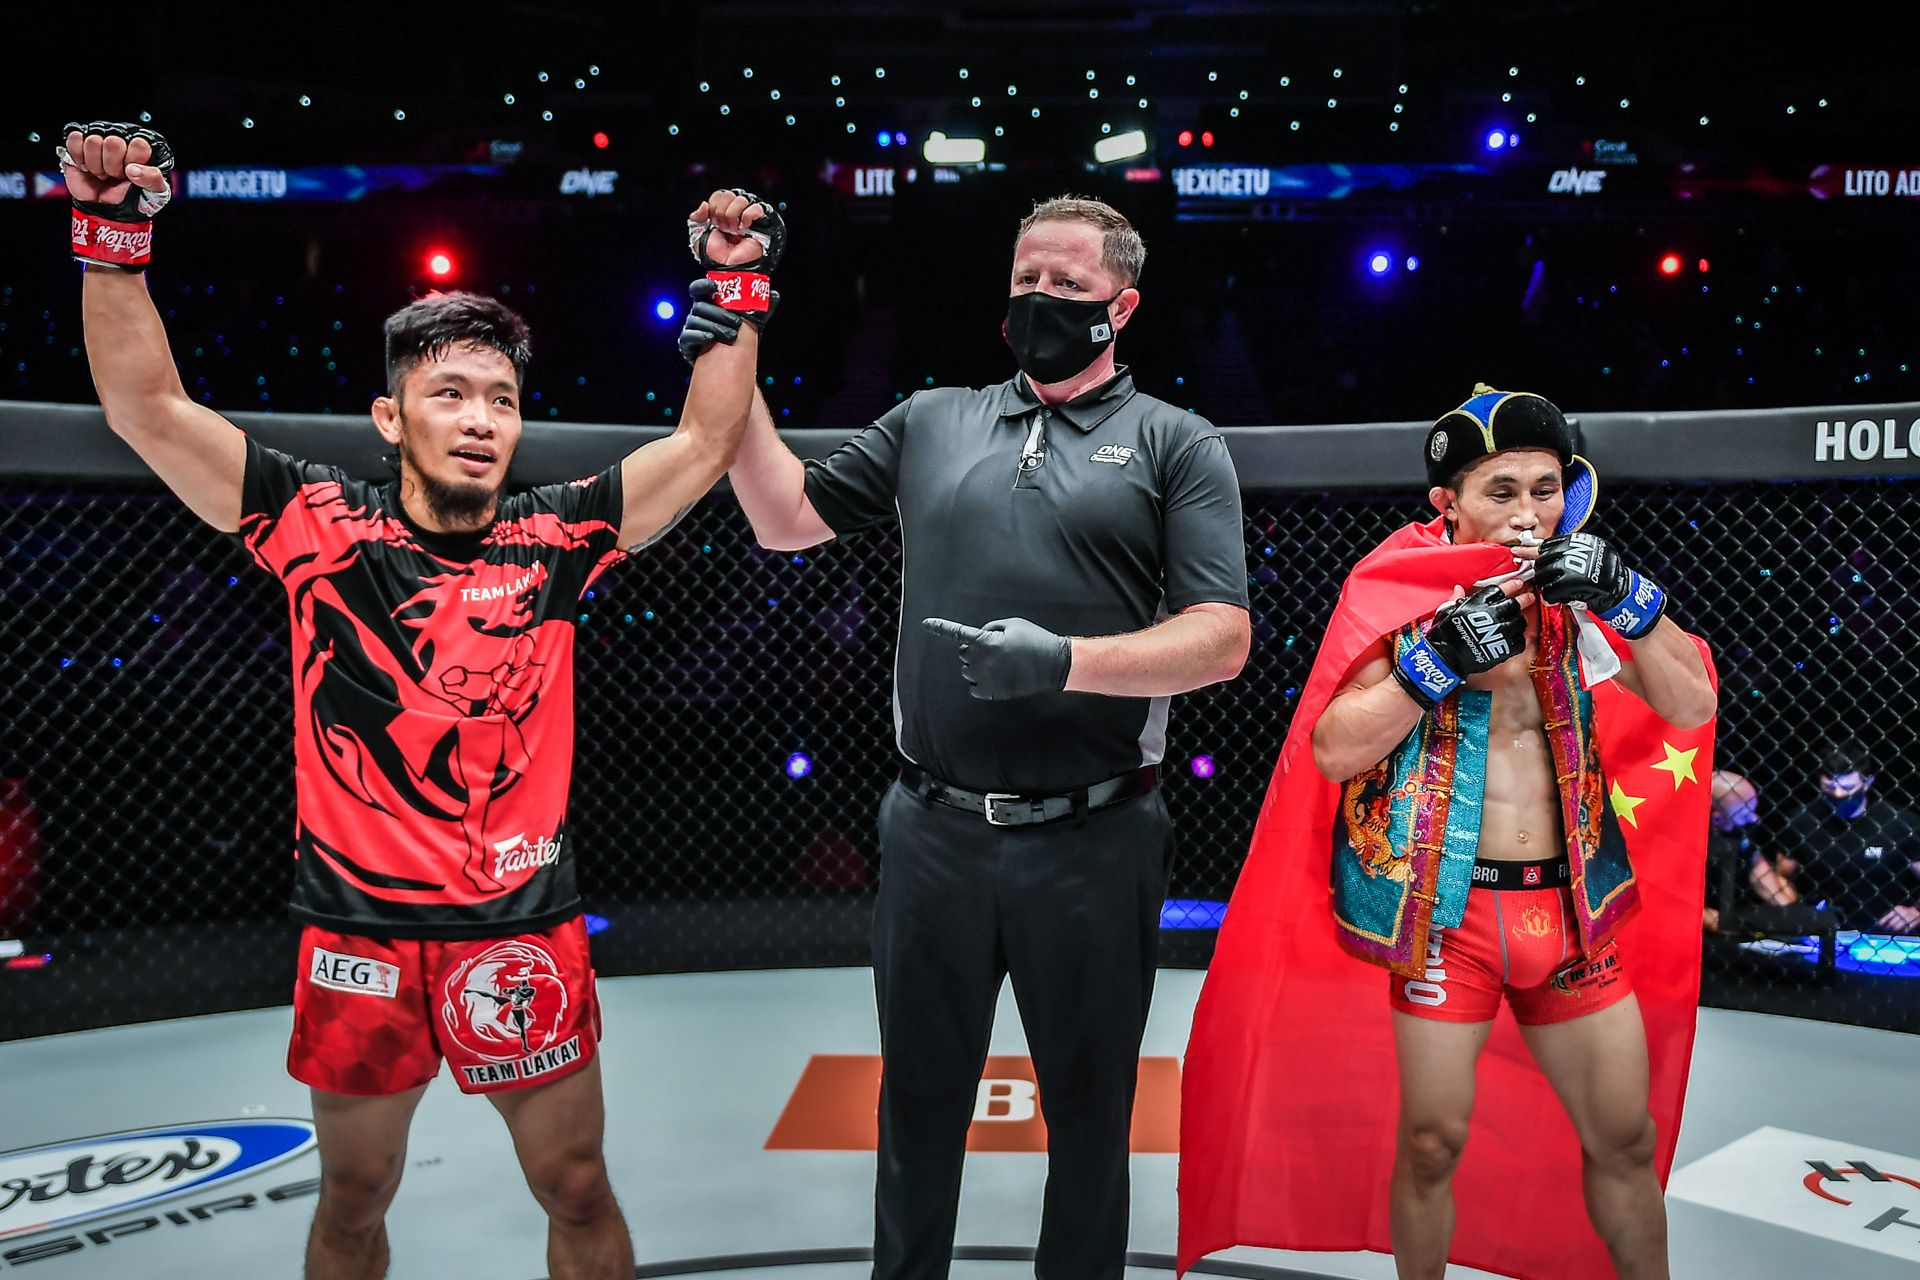 ONE-Revolution-Adiwang-def-Hexigetu Adiwang willing to be 'lil bro' Pacio's gatekeeper for now Mixed Martial Arts News ONE Championship  - philippine sports news